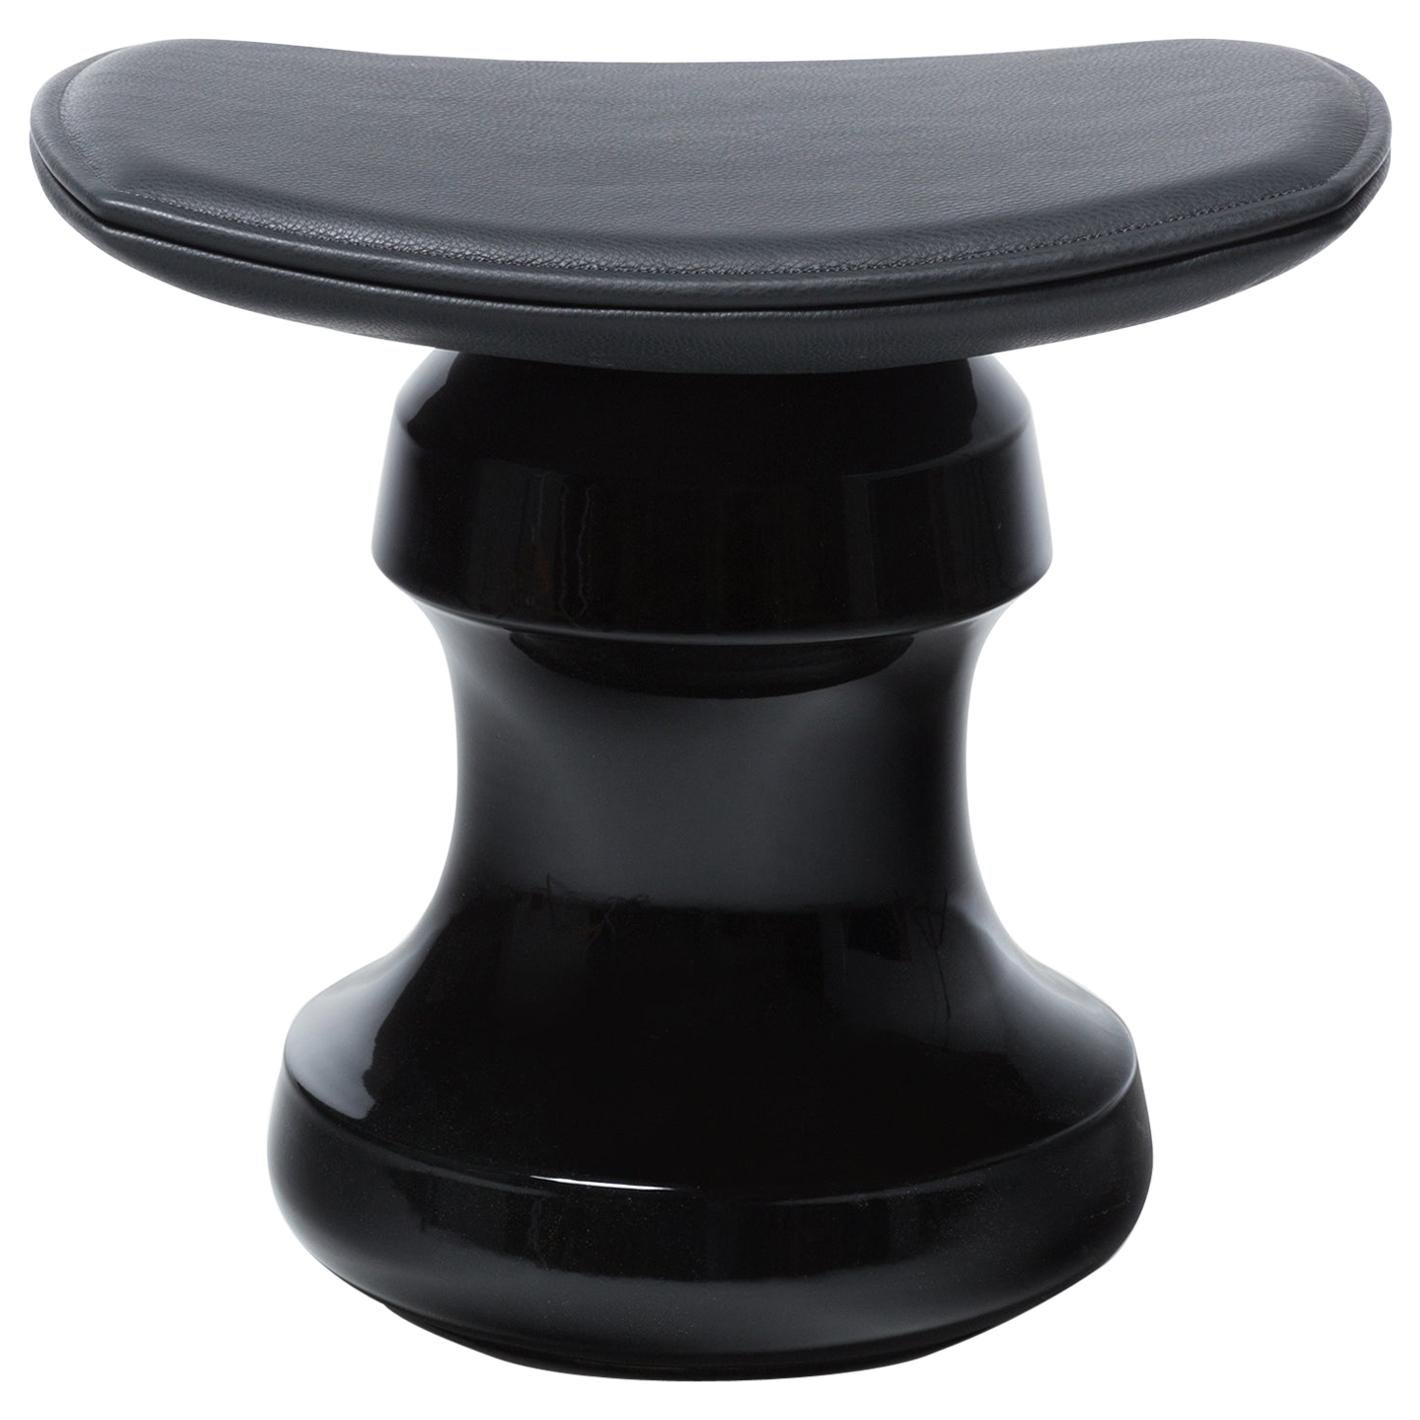 HOLLY HUNT ROI Stool in Black Ceramic Base & Black Leather Seat